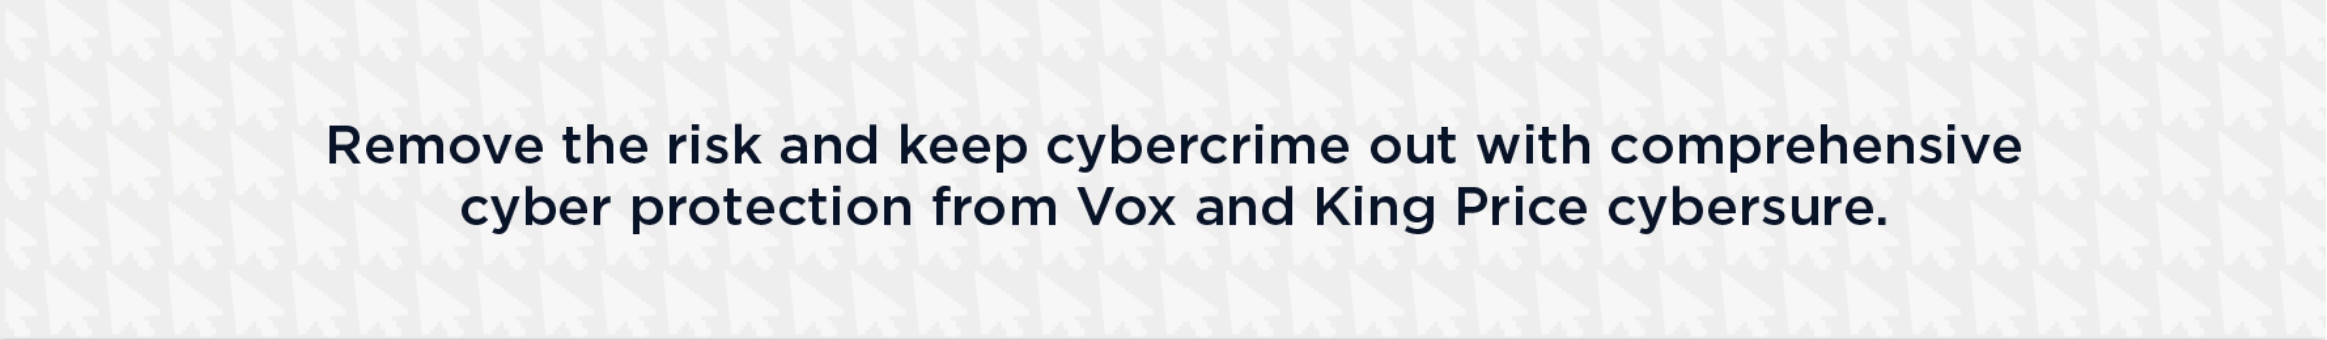 Remove the risk and keep cybercrime out with comprehensive cyber protection from Vox and King Price cybersure.